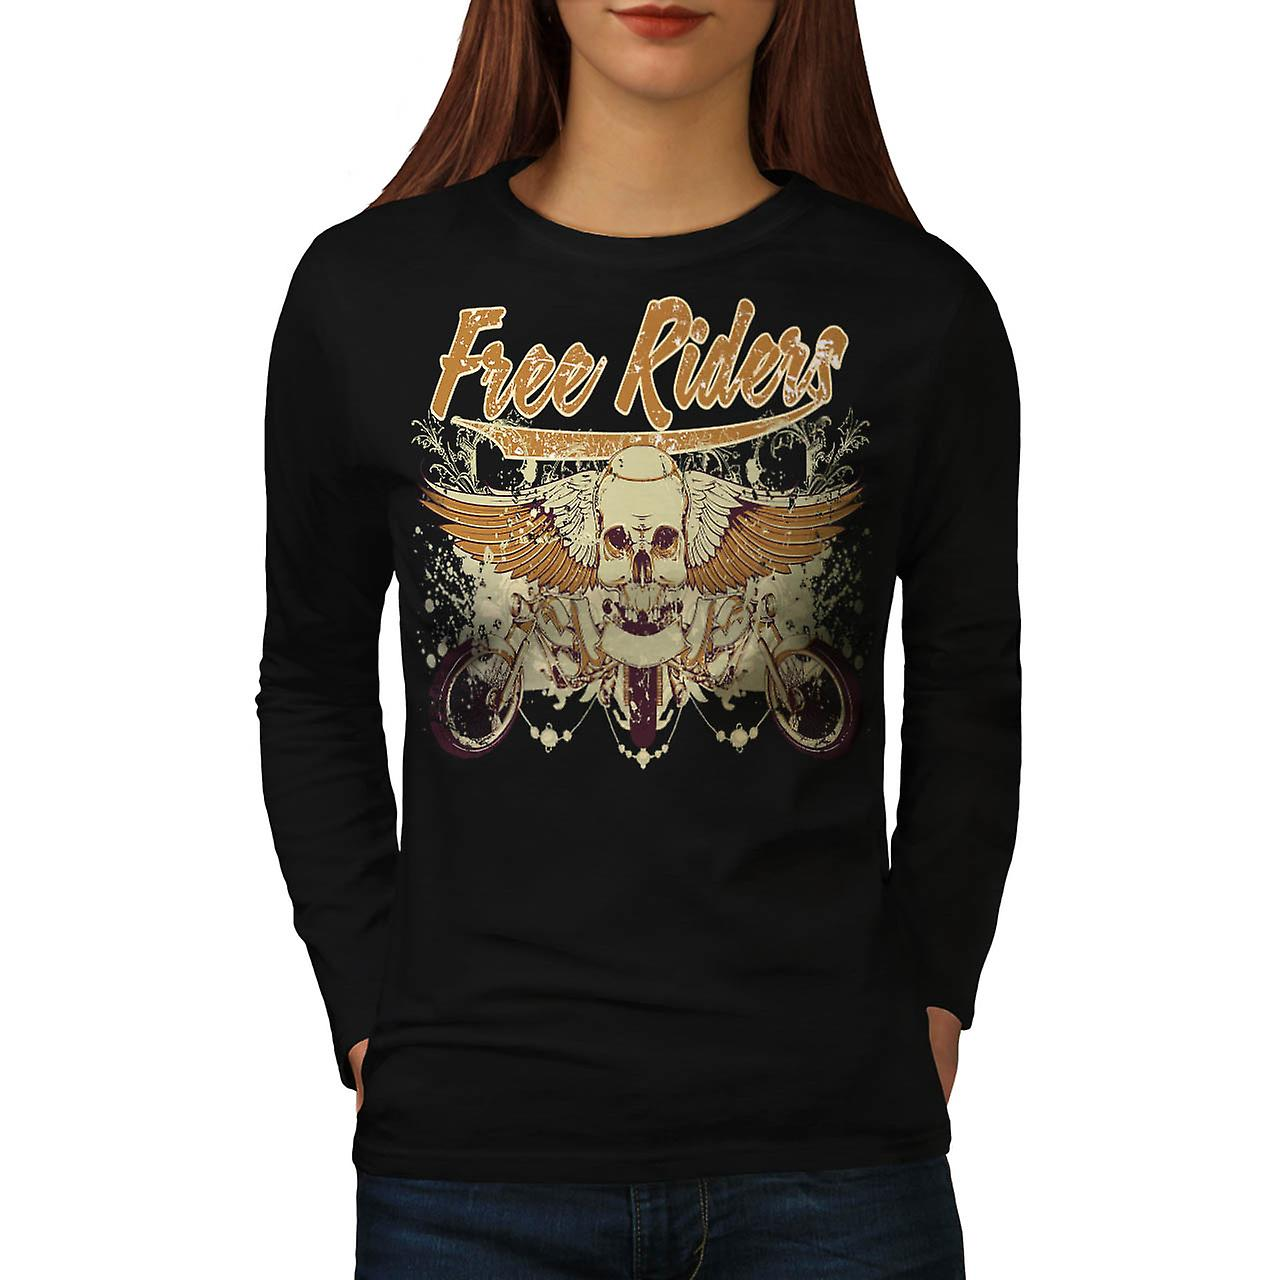 Free Rider Bike Gang Biker Life Women Black Long Sleeve T-shirt | Wellcoda